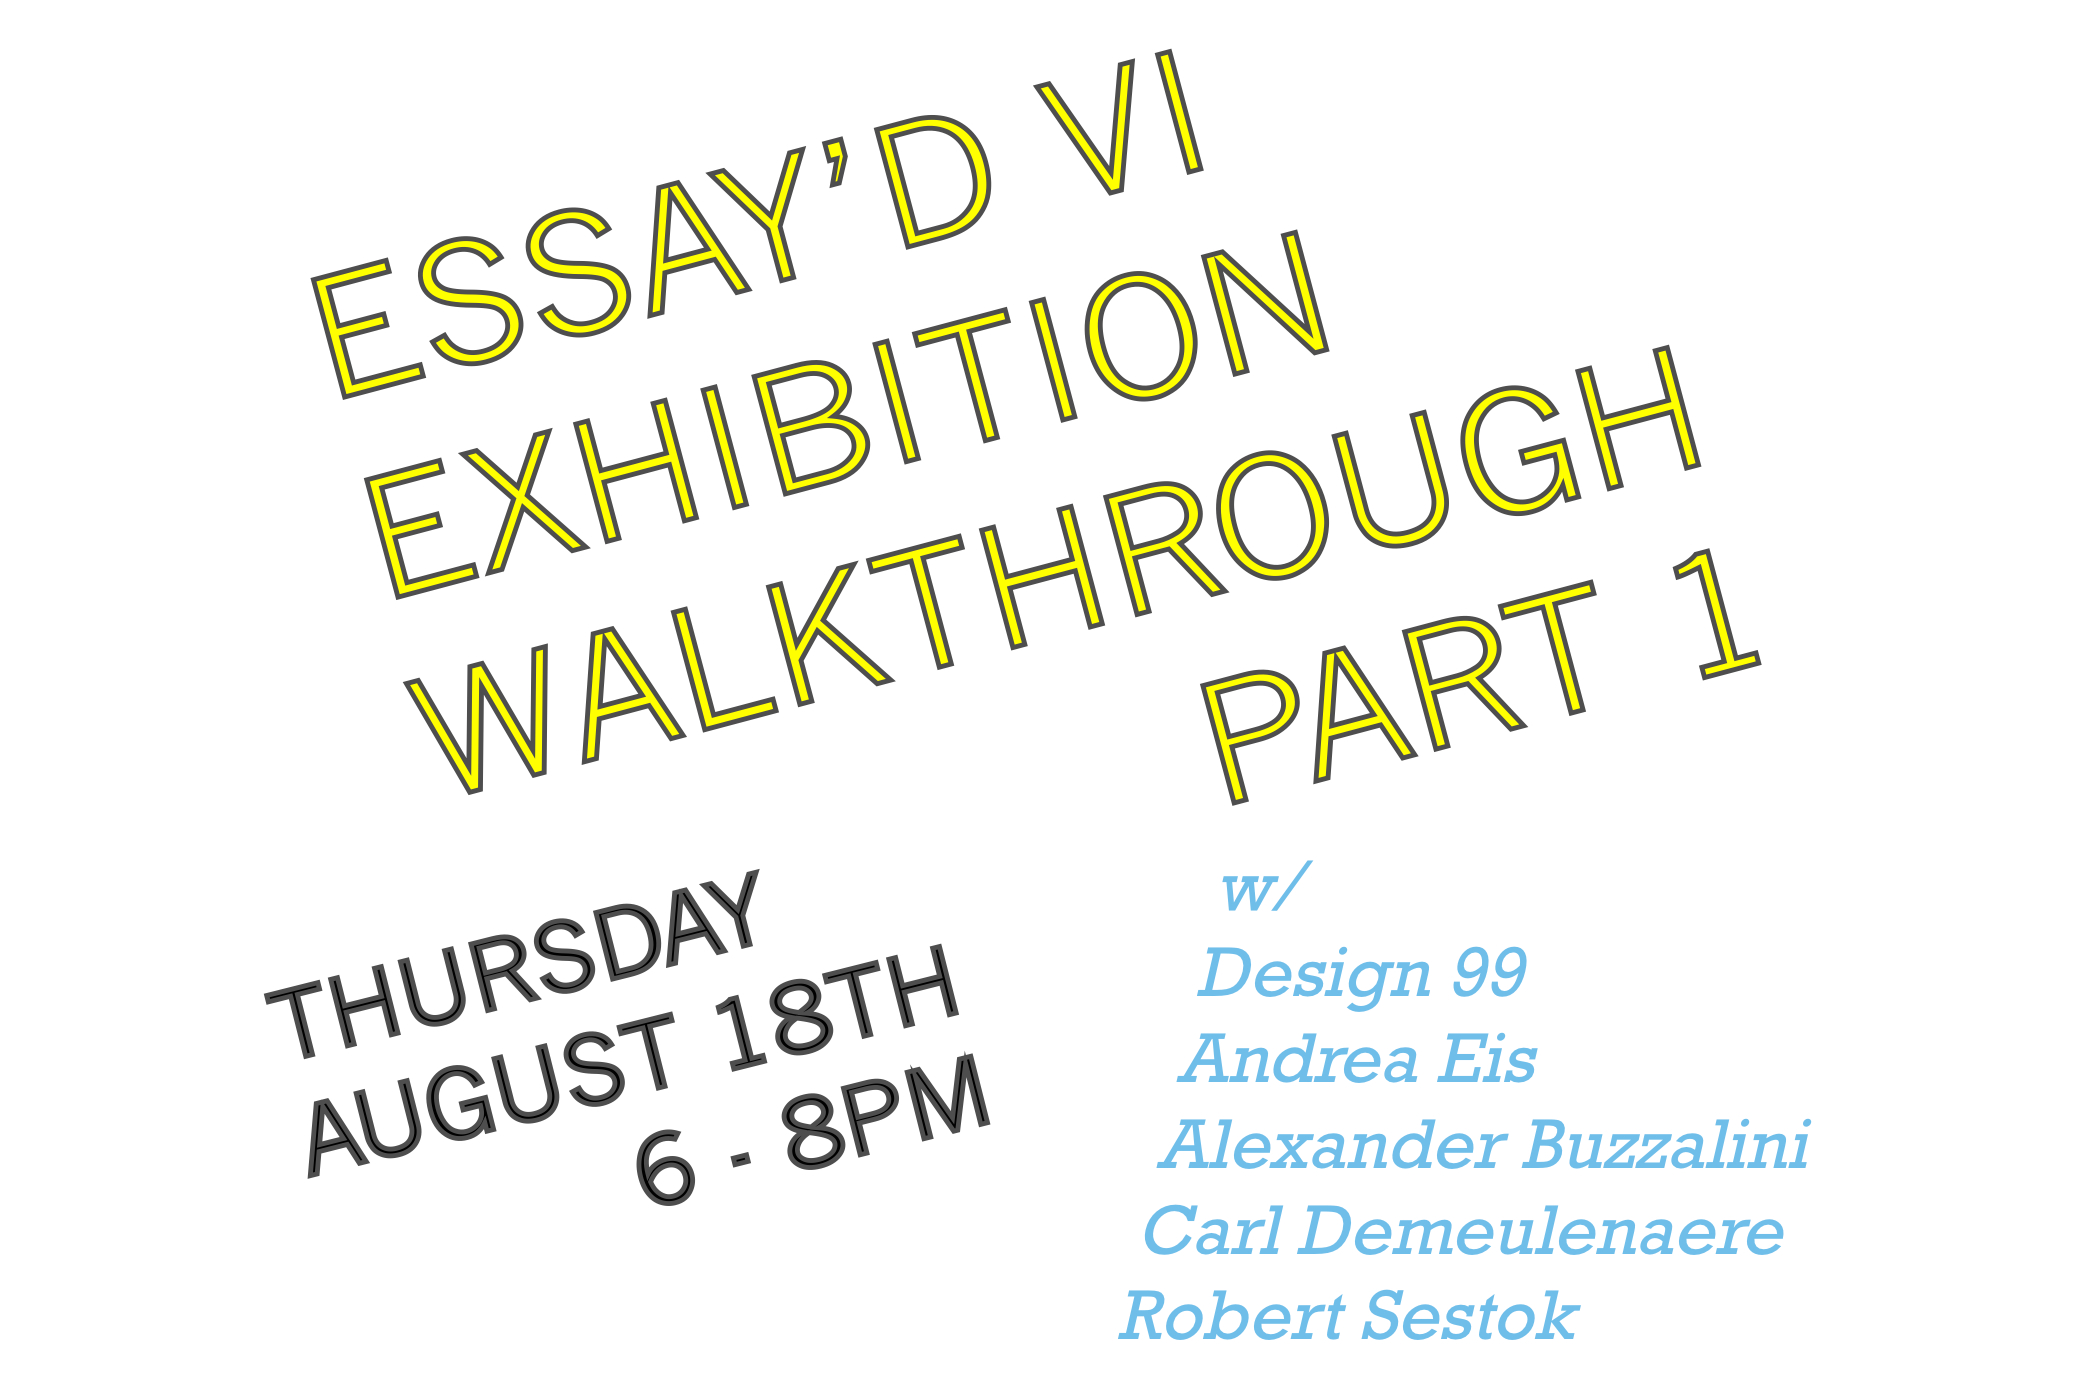 Essay'd VI Exhibition Walkthrough - Part 1